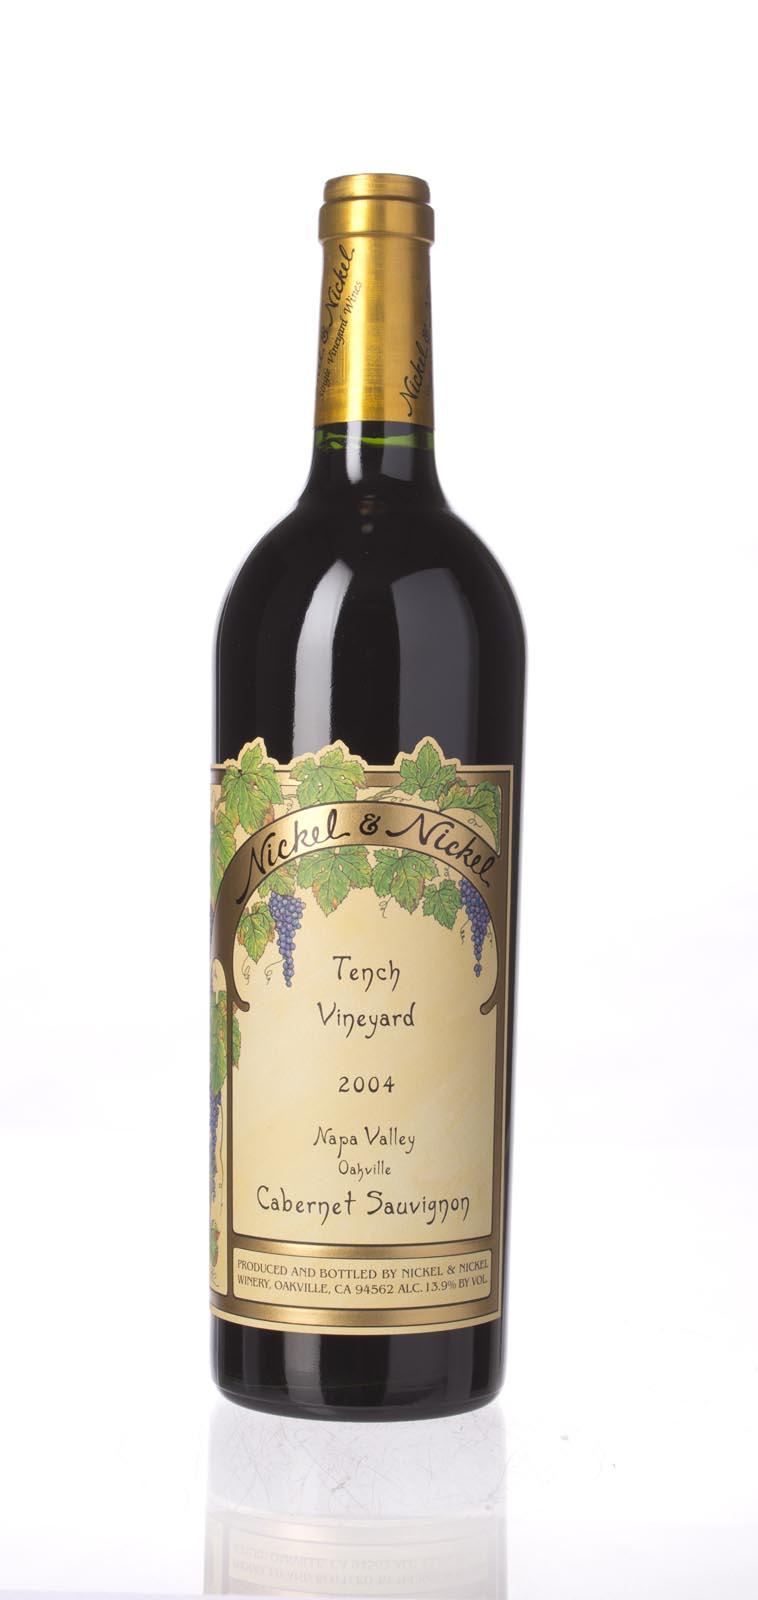 Nickel & Nickel Cabernet Sauvignon Tench Vineyard 2004, 750mL () from The BPW - Merchants of rare and fine wines.